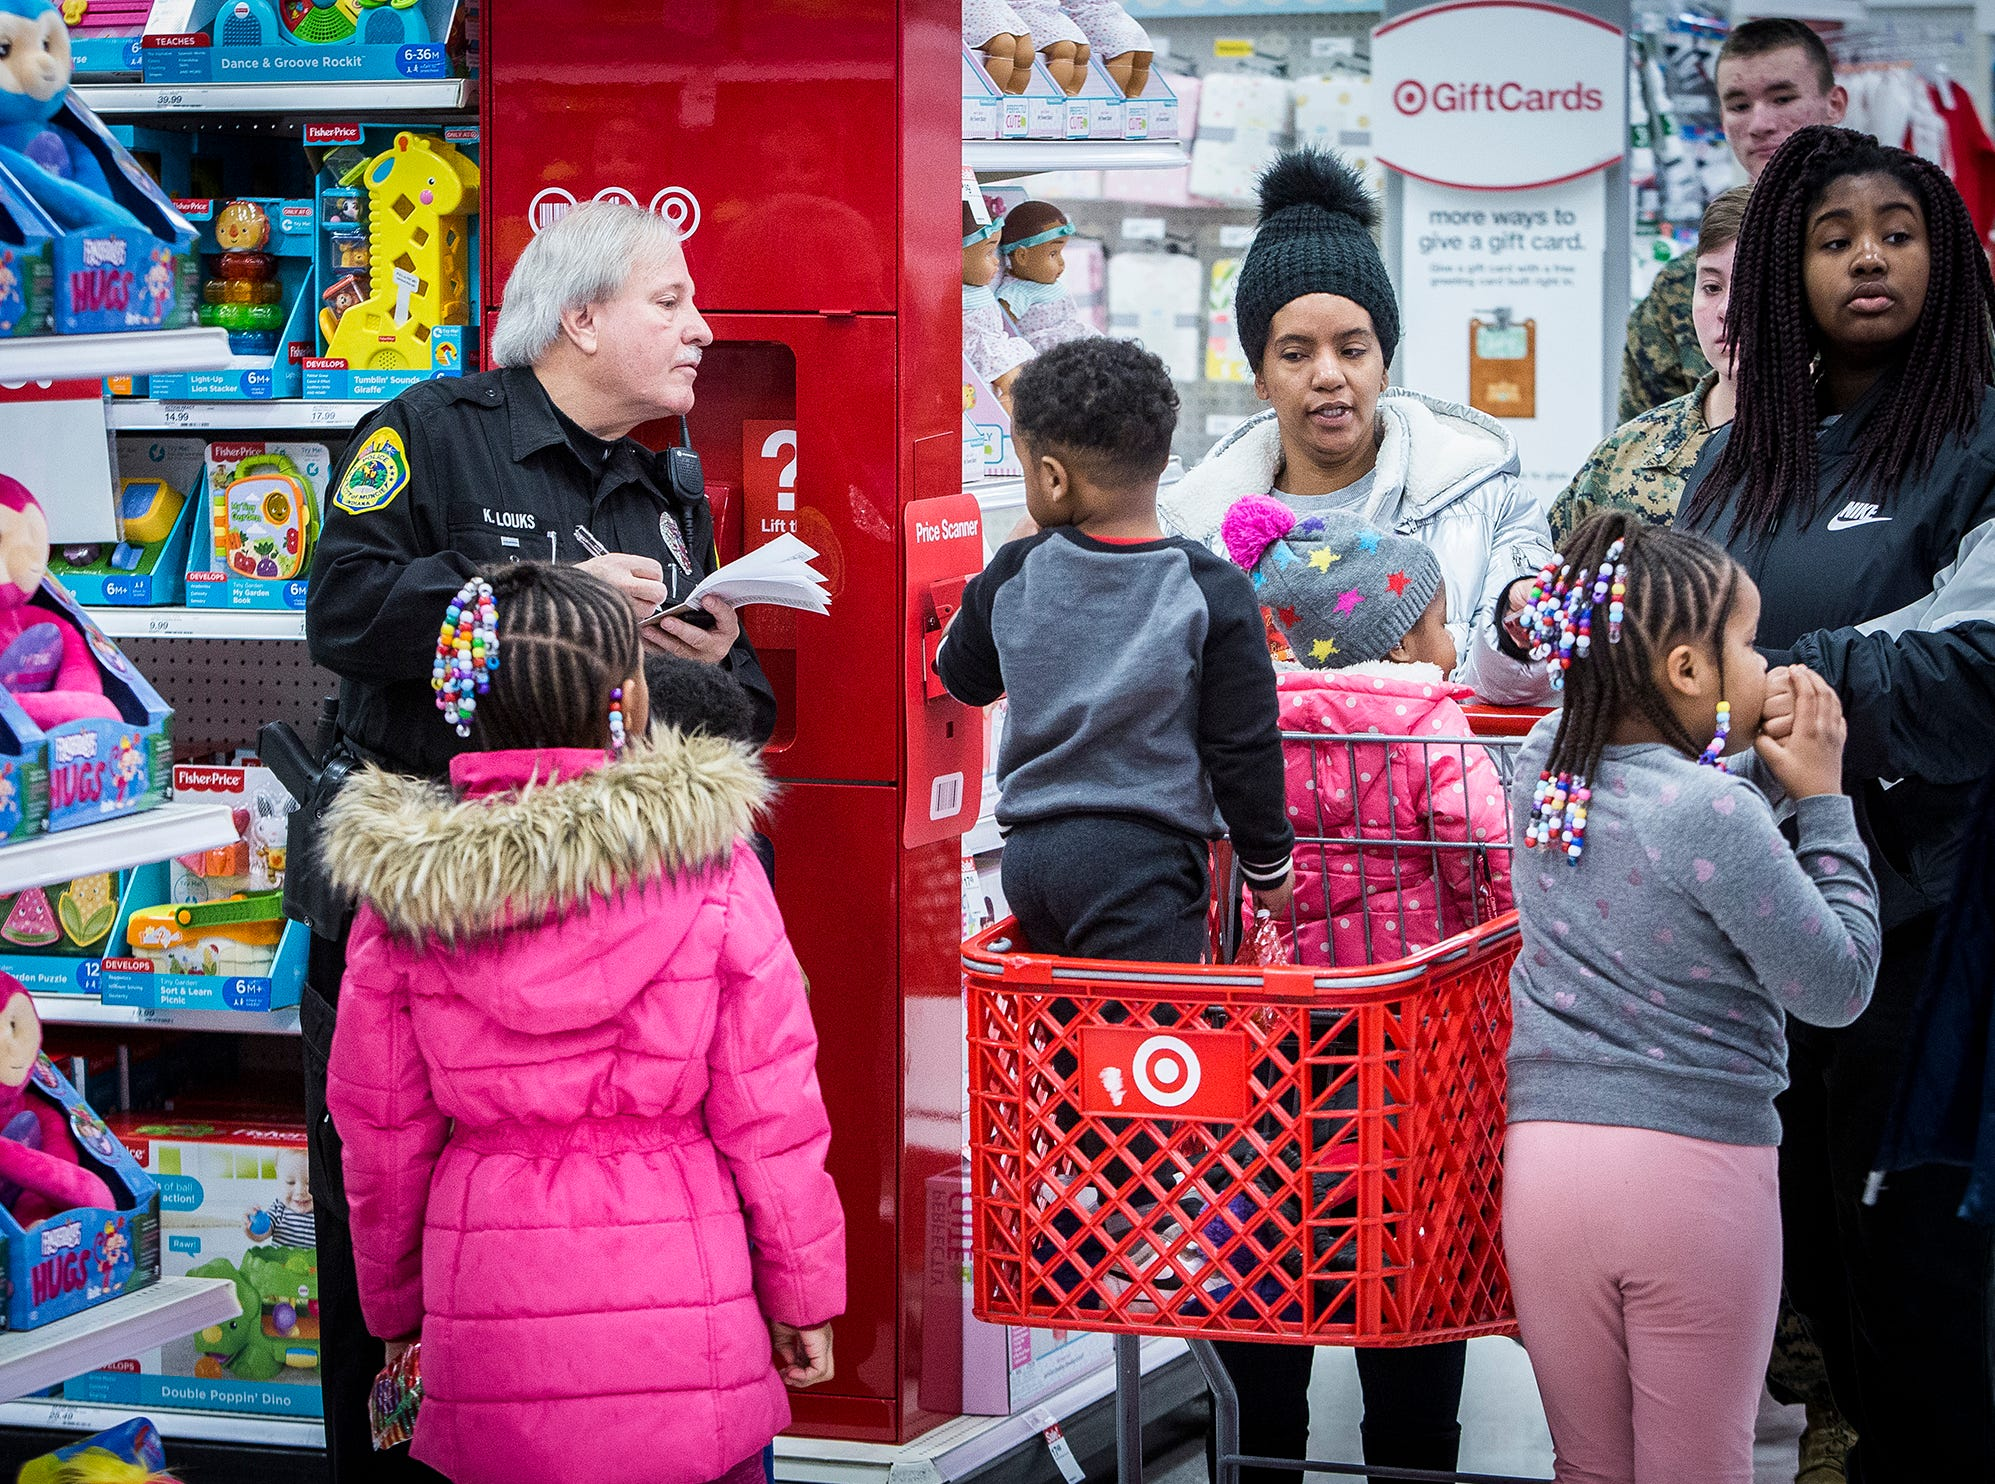 Firefighters, police officers and members of the JROTC volunteered to help families shop for Christmas gifts at Target during the annual Heroes and Helpers event Saturday morning.  The Fraternal Order of Police Lodge 87 sponsored the event which served around 150 children this year.